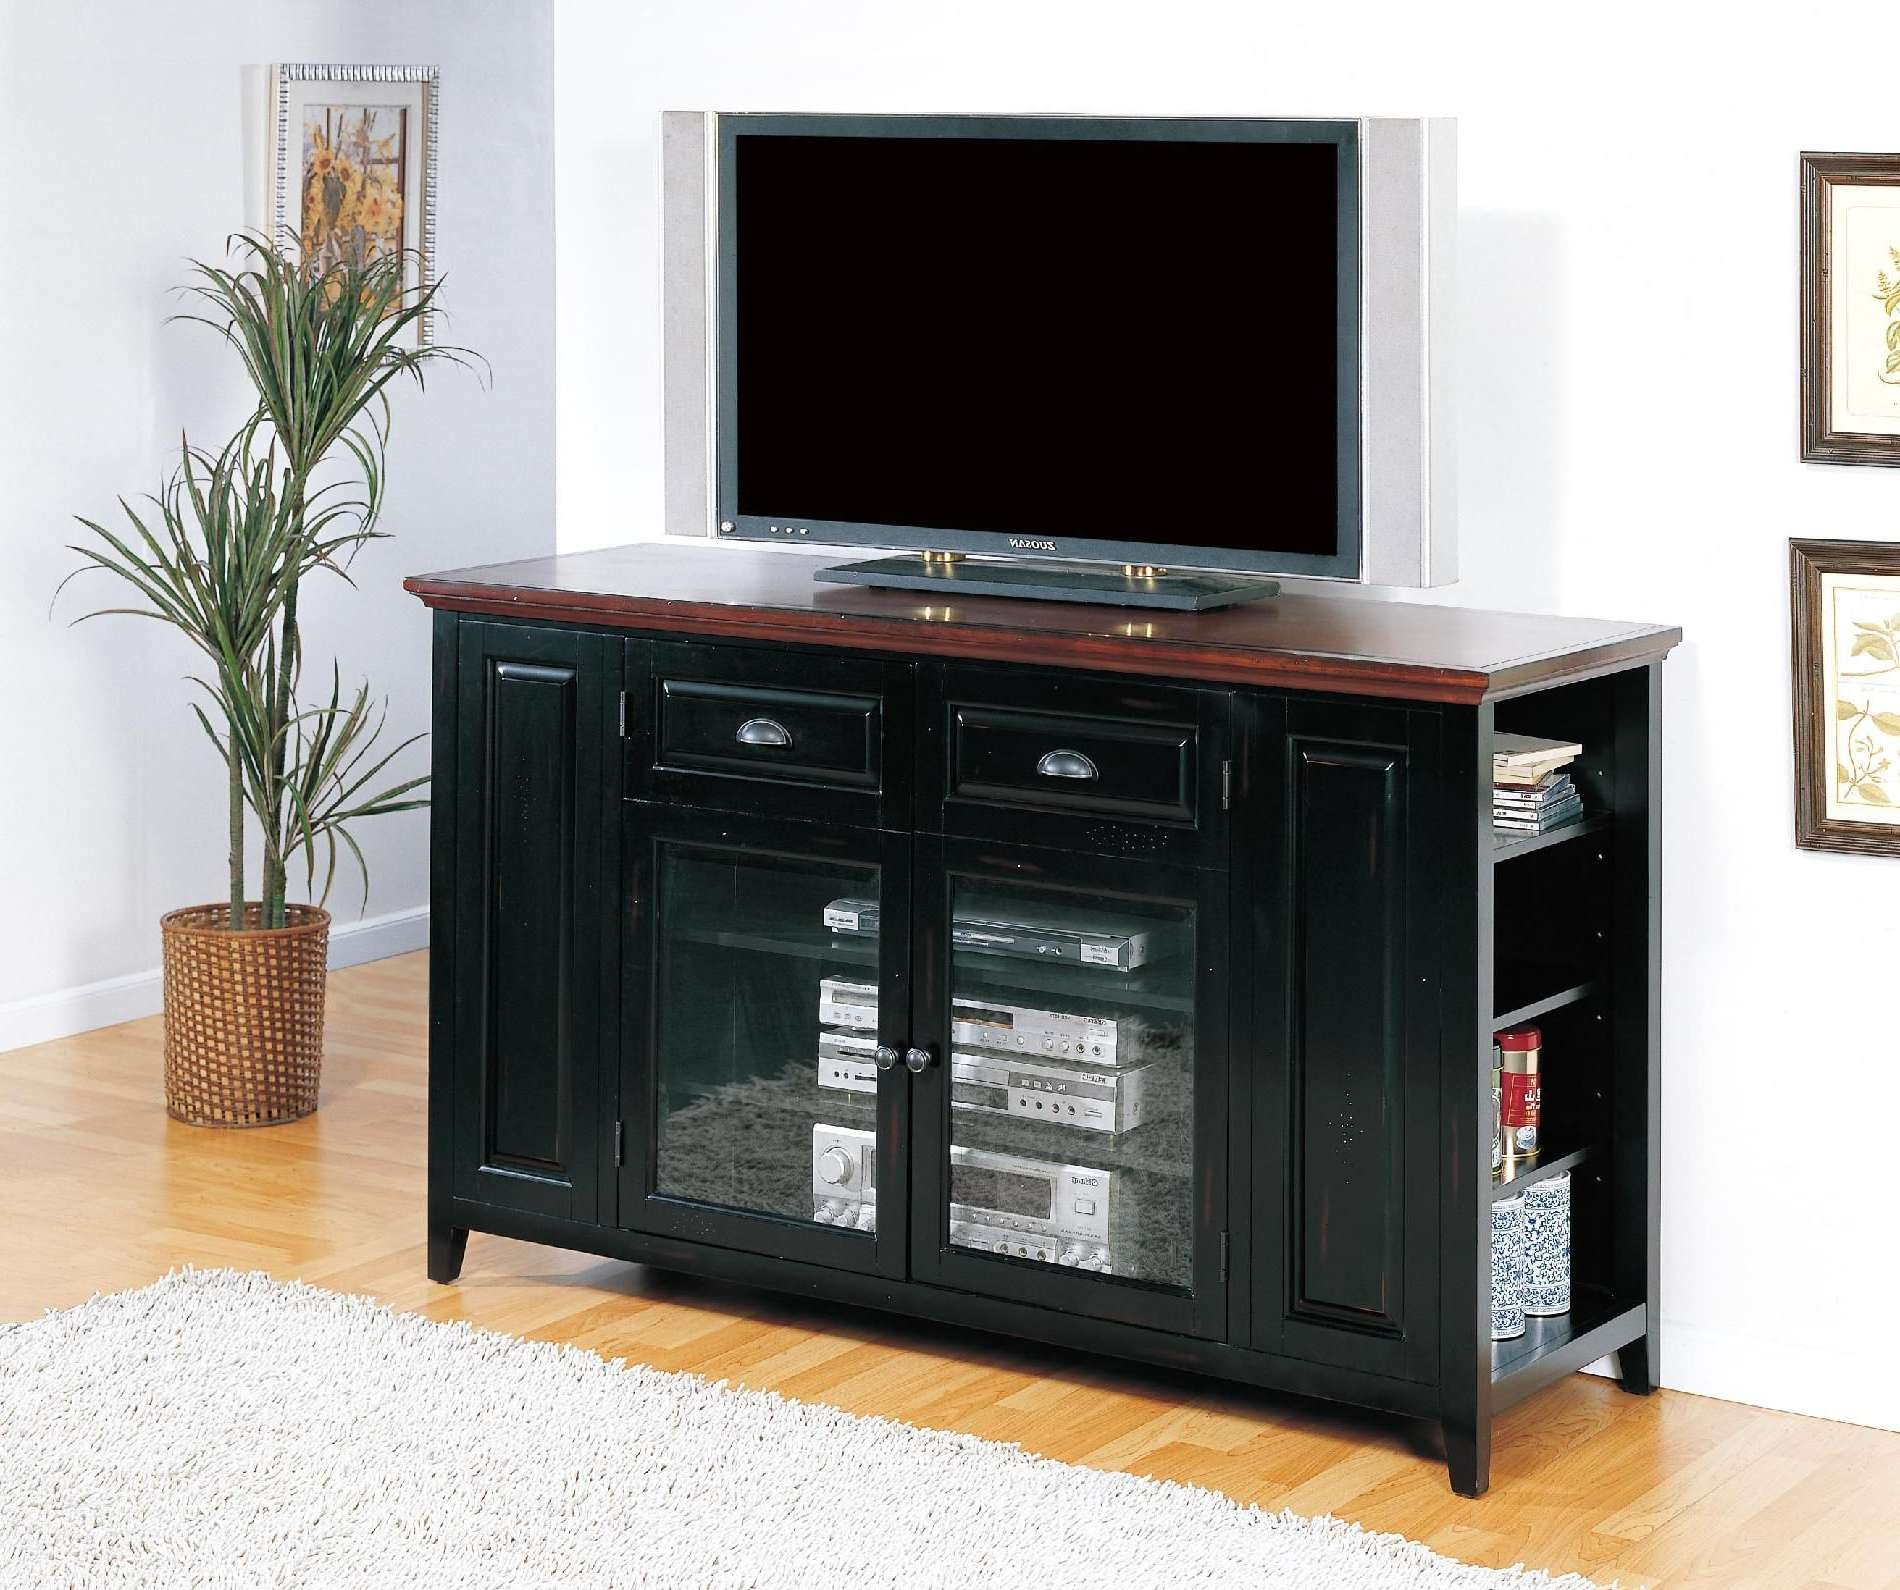 Retro Black Oak Wood Tv Stand With Glass Doors Of Tall Tv Stands Inside Tall Black Tv Cabinets (View 3 of 20)